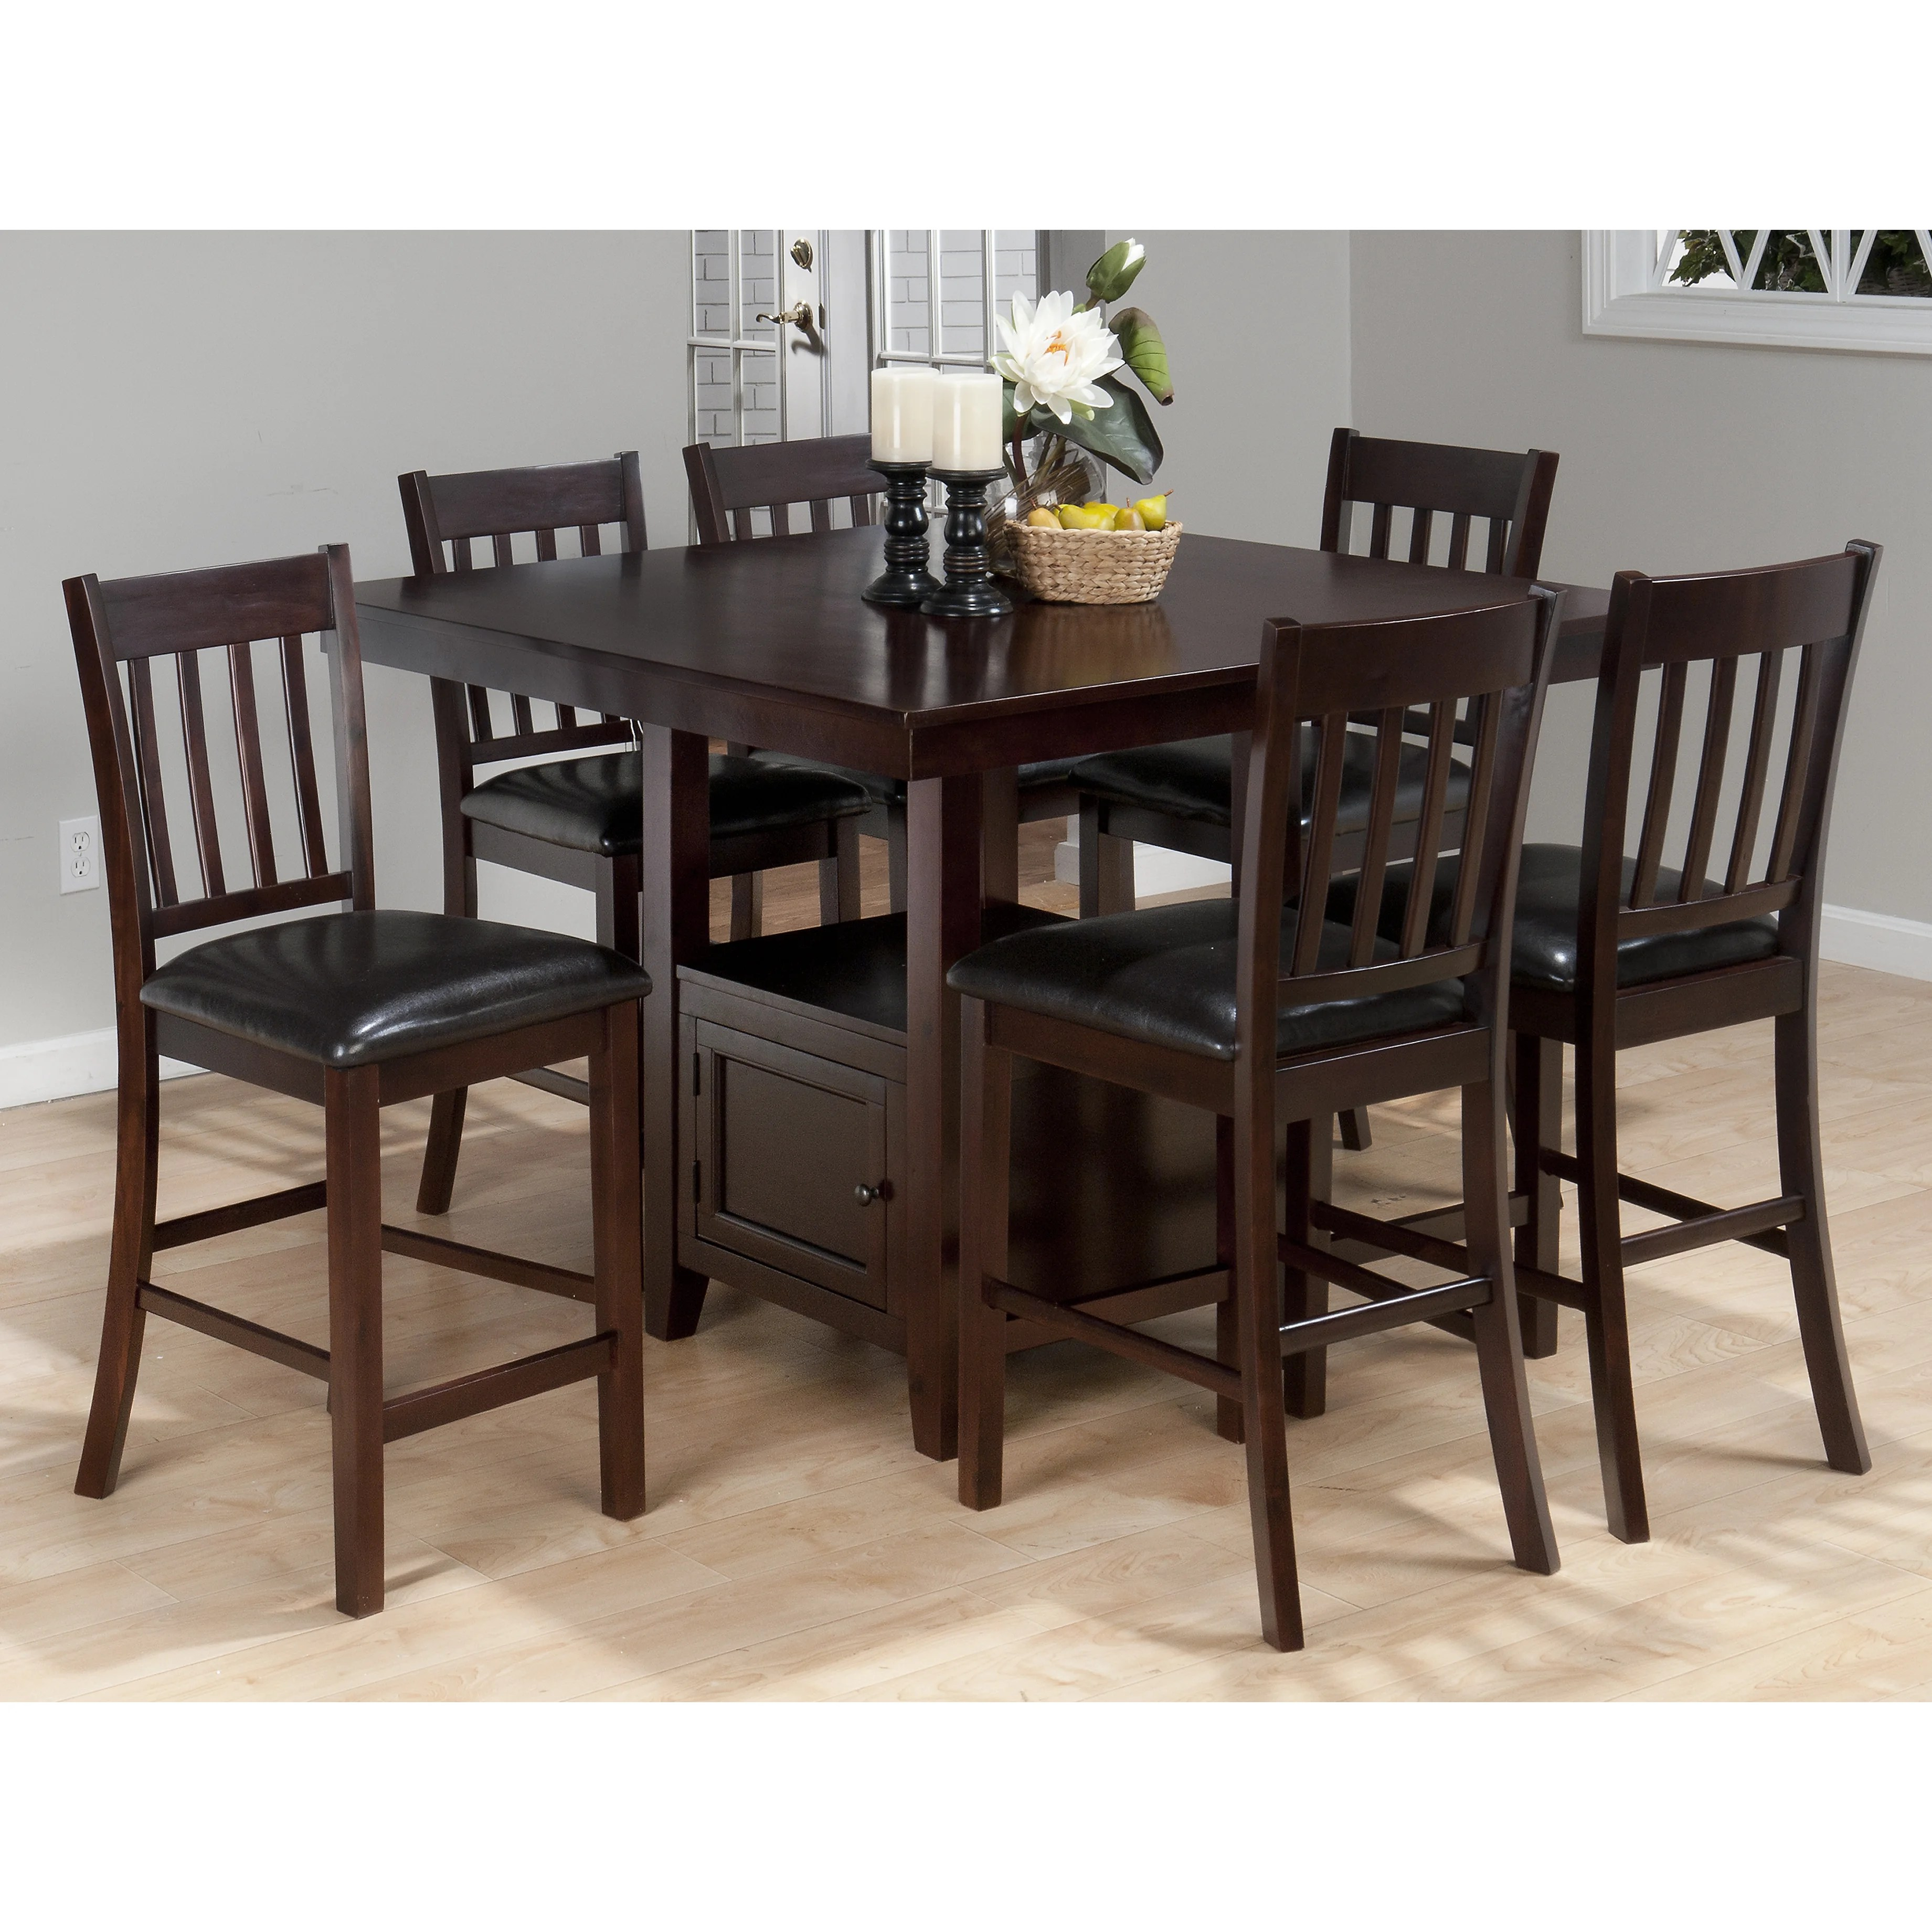 Kitchen and Dining Tables l c O~Pedestal O~Counter+ 5BPO 22 5BD 22+H 5BPC 5D counter height kitchen tables QUICK VIEW Oakmeadow Counter Height Dining Table